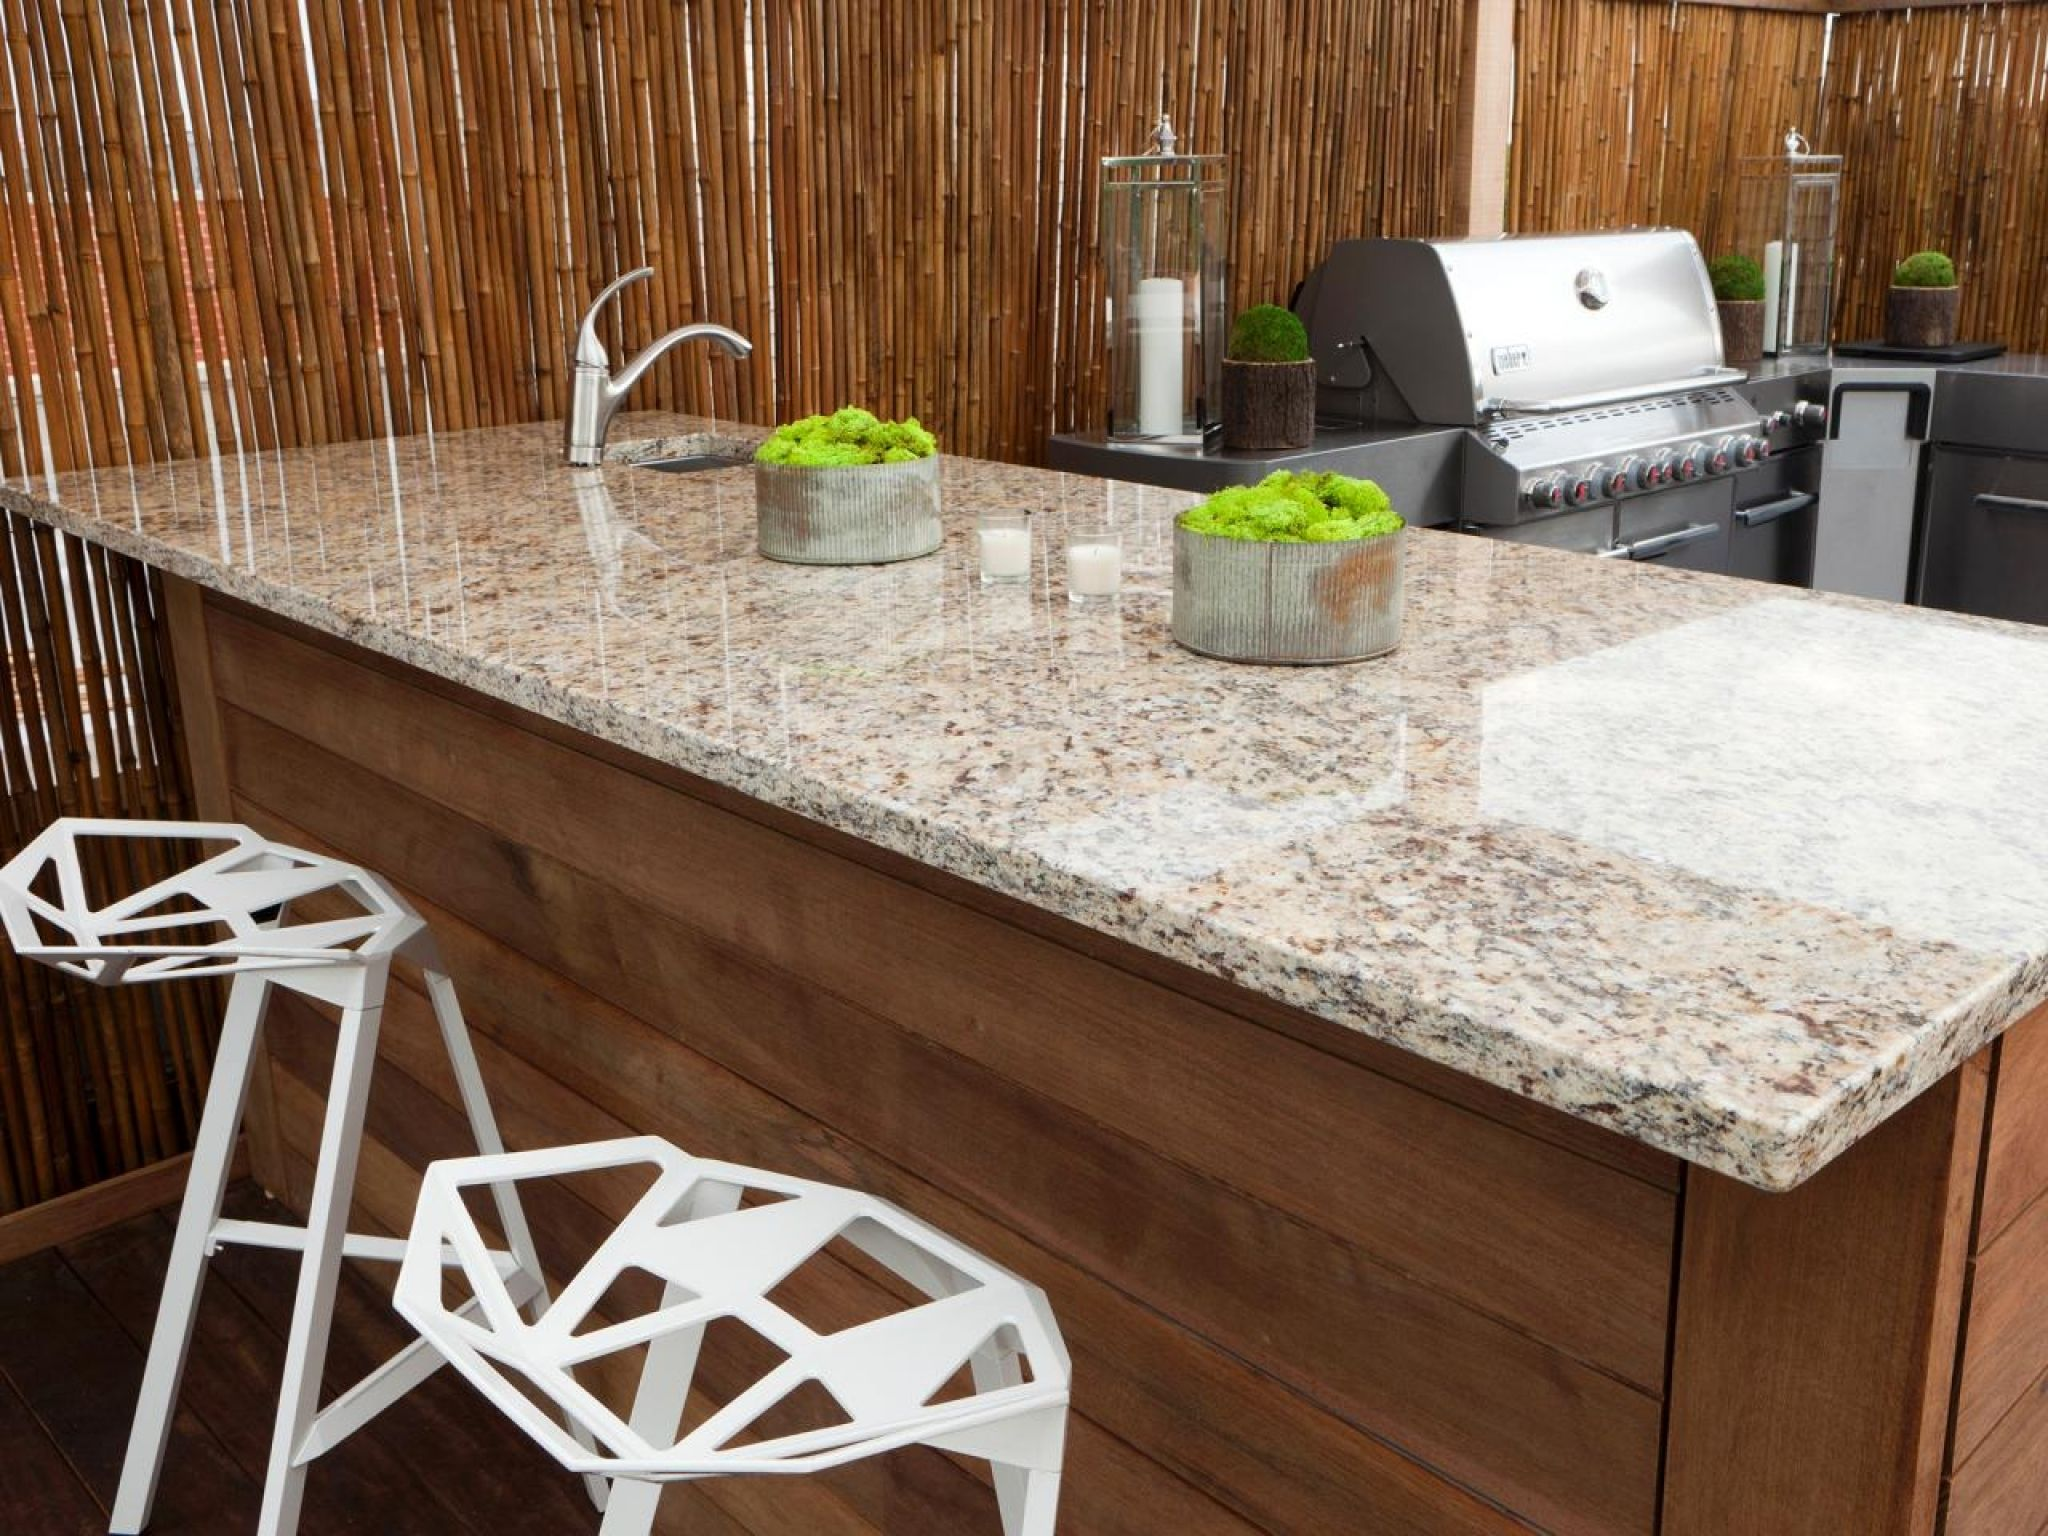 outdoor kitchen cost estimator - best interior paint brands Check more at http://www.mtbasics.com/outdoor-kitchen-cost-estimator-best-interior-paint-brands/